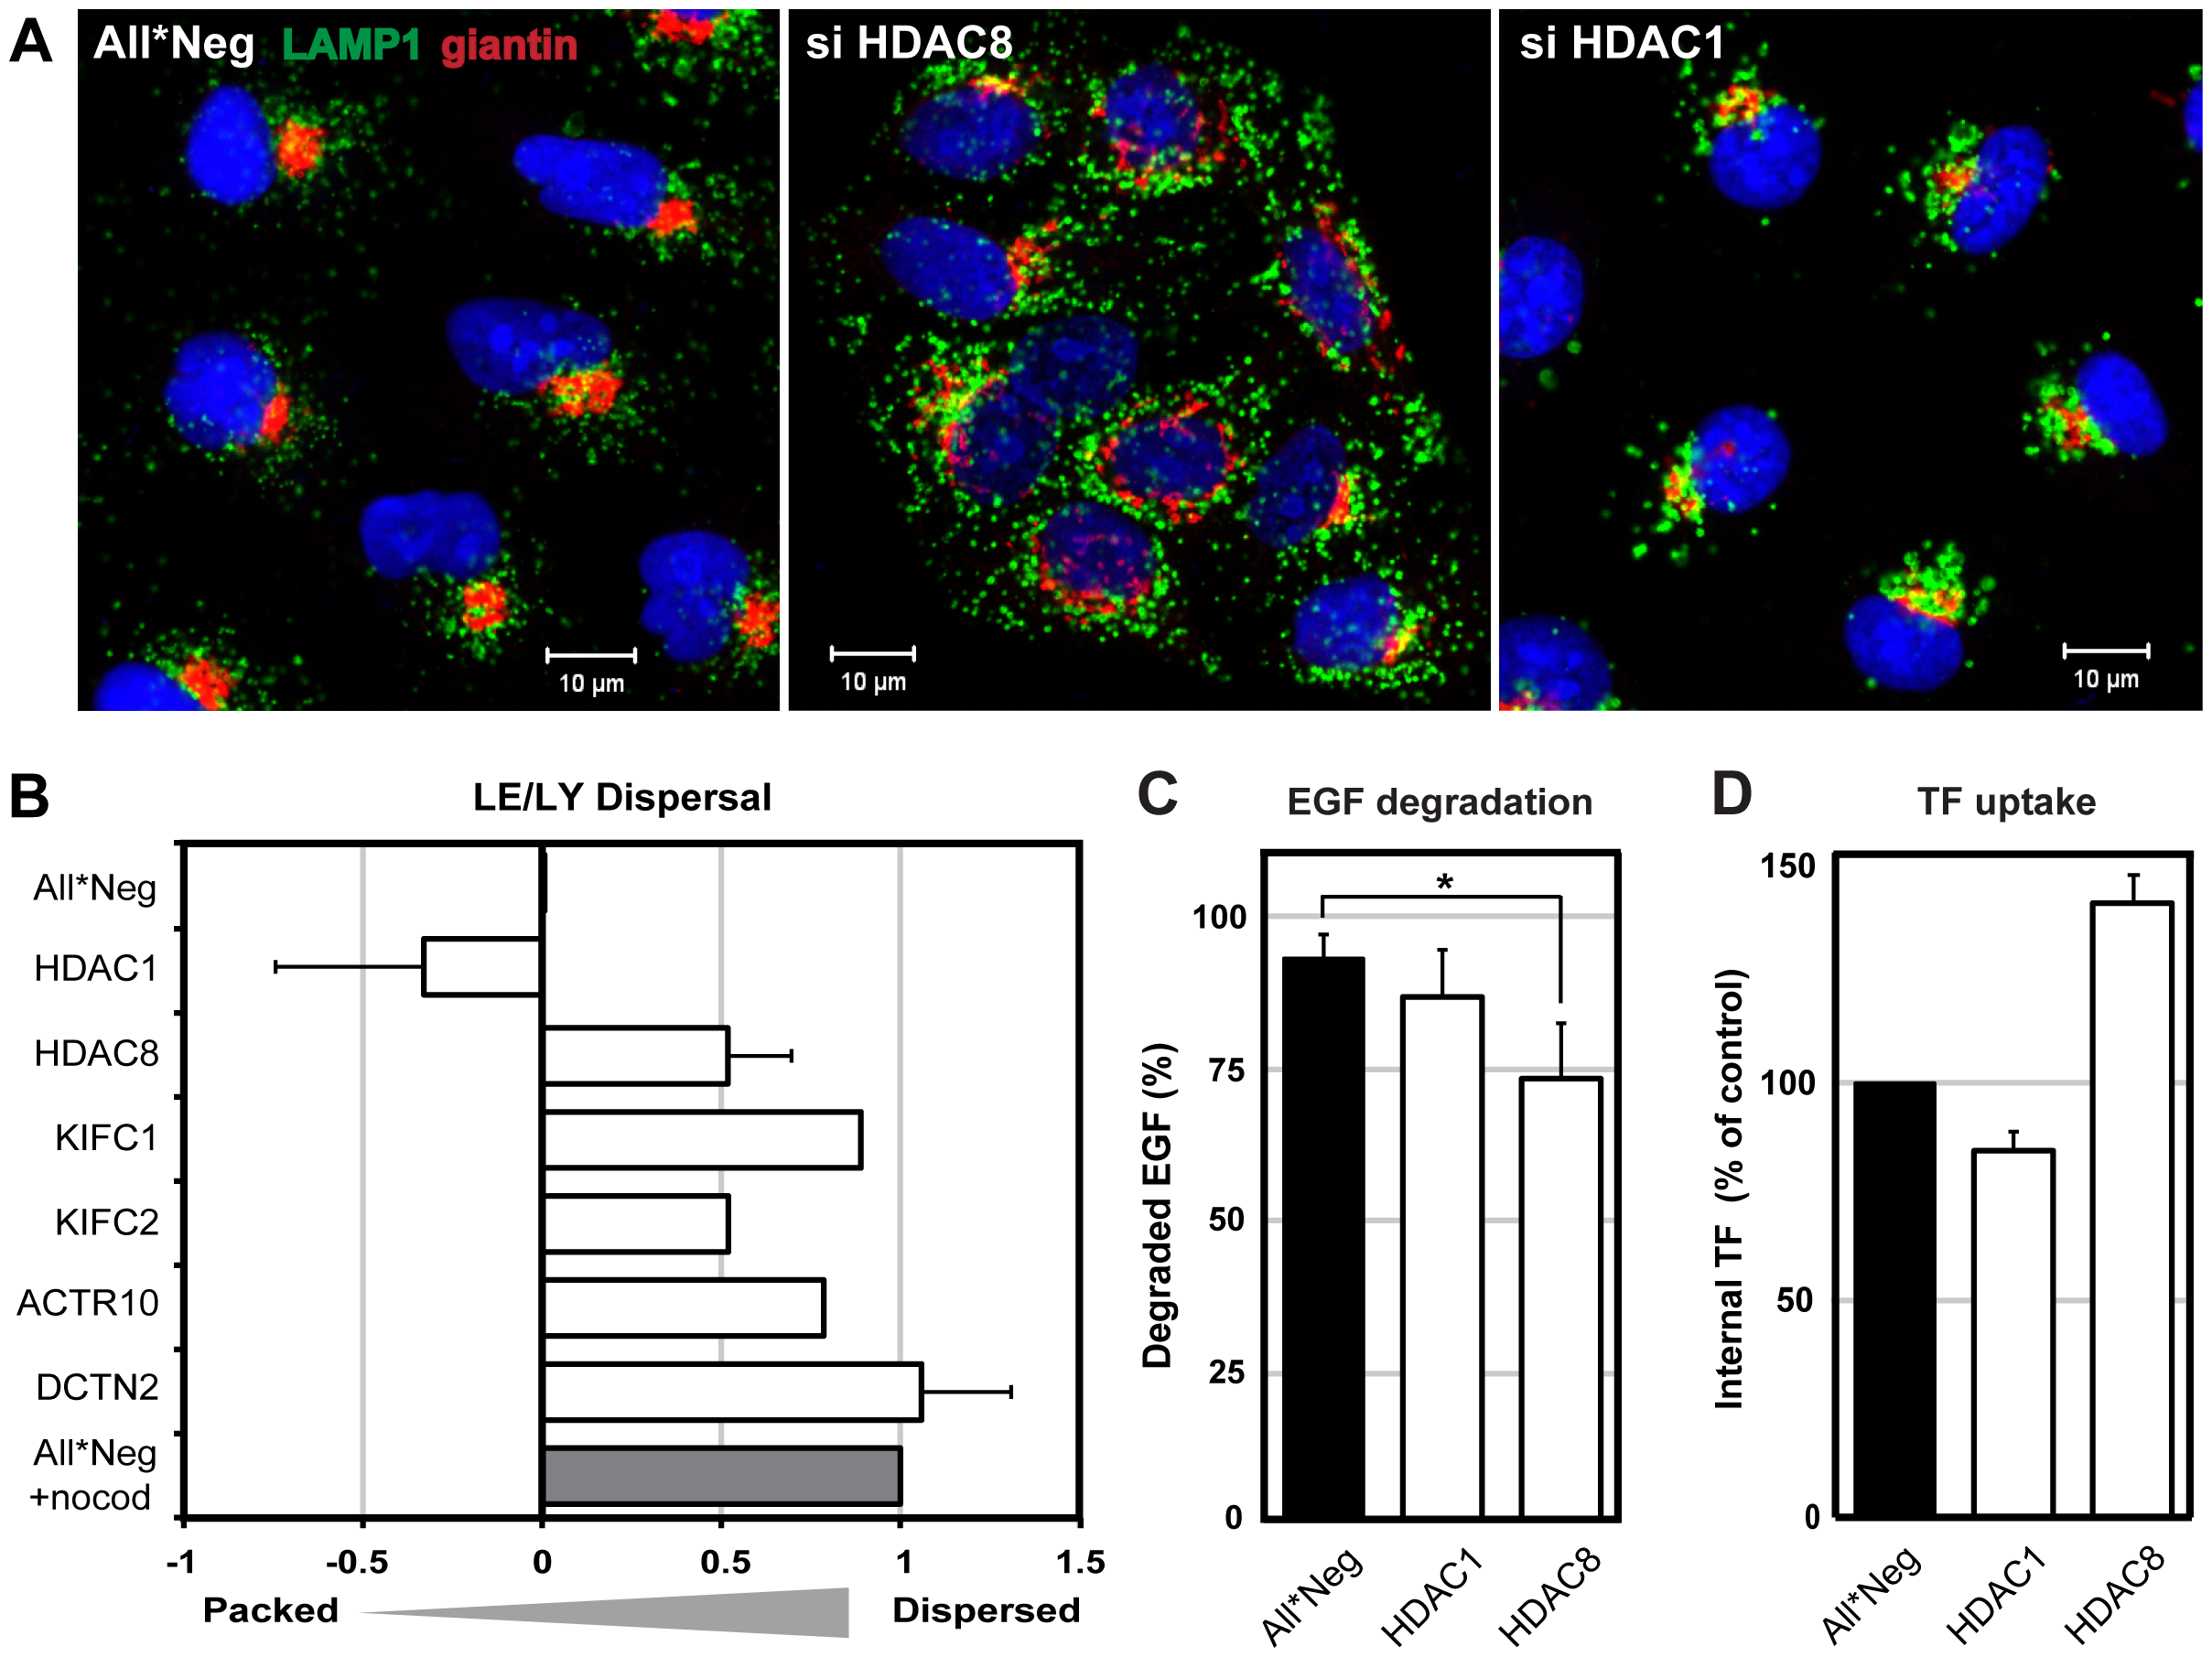 HDAC8 depletion induces dispersal of LE/Lys.